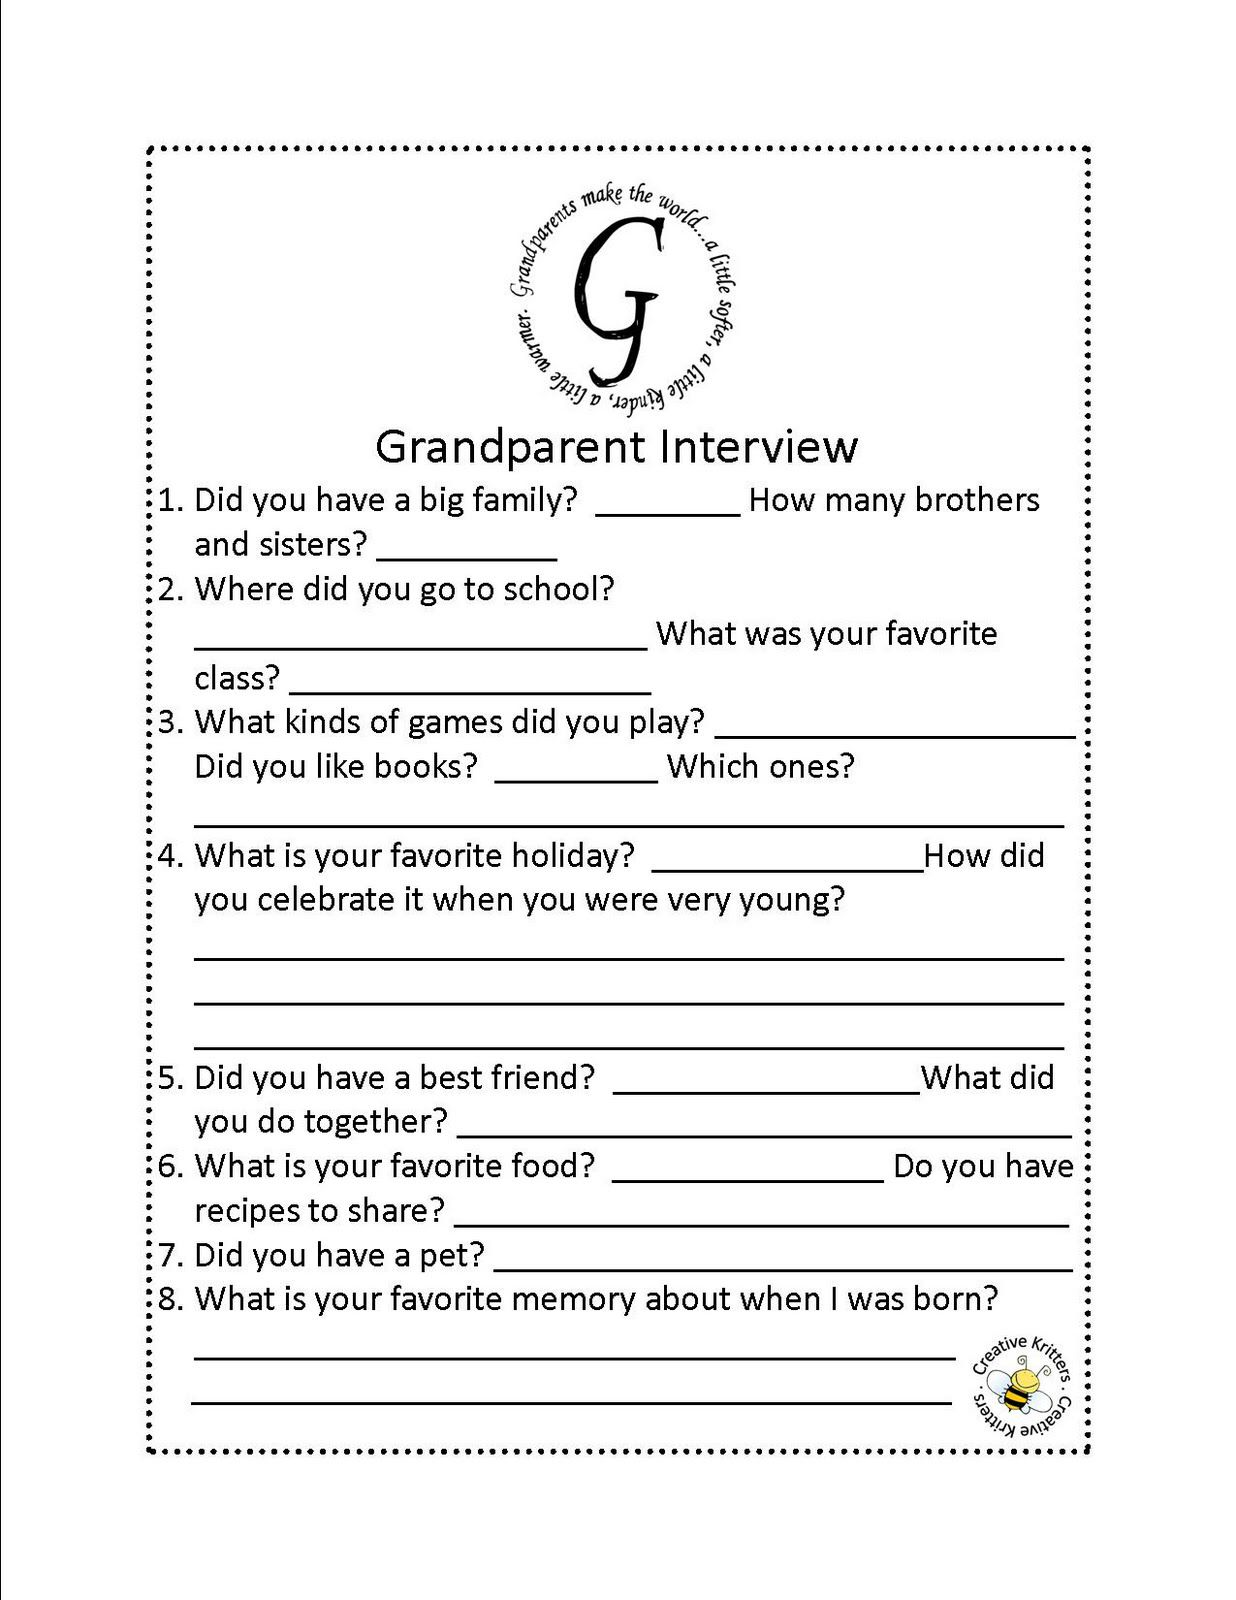 Simple Interview Questions For Grandparents